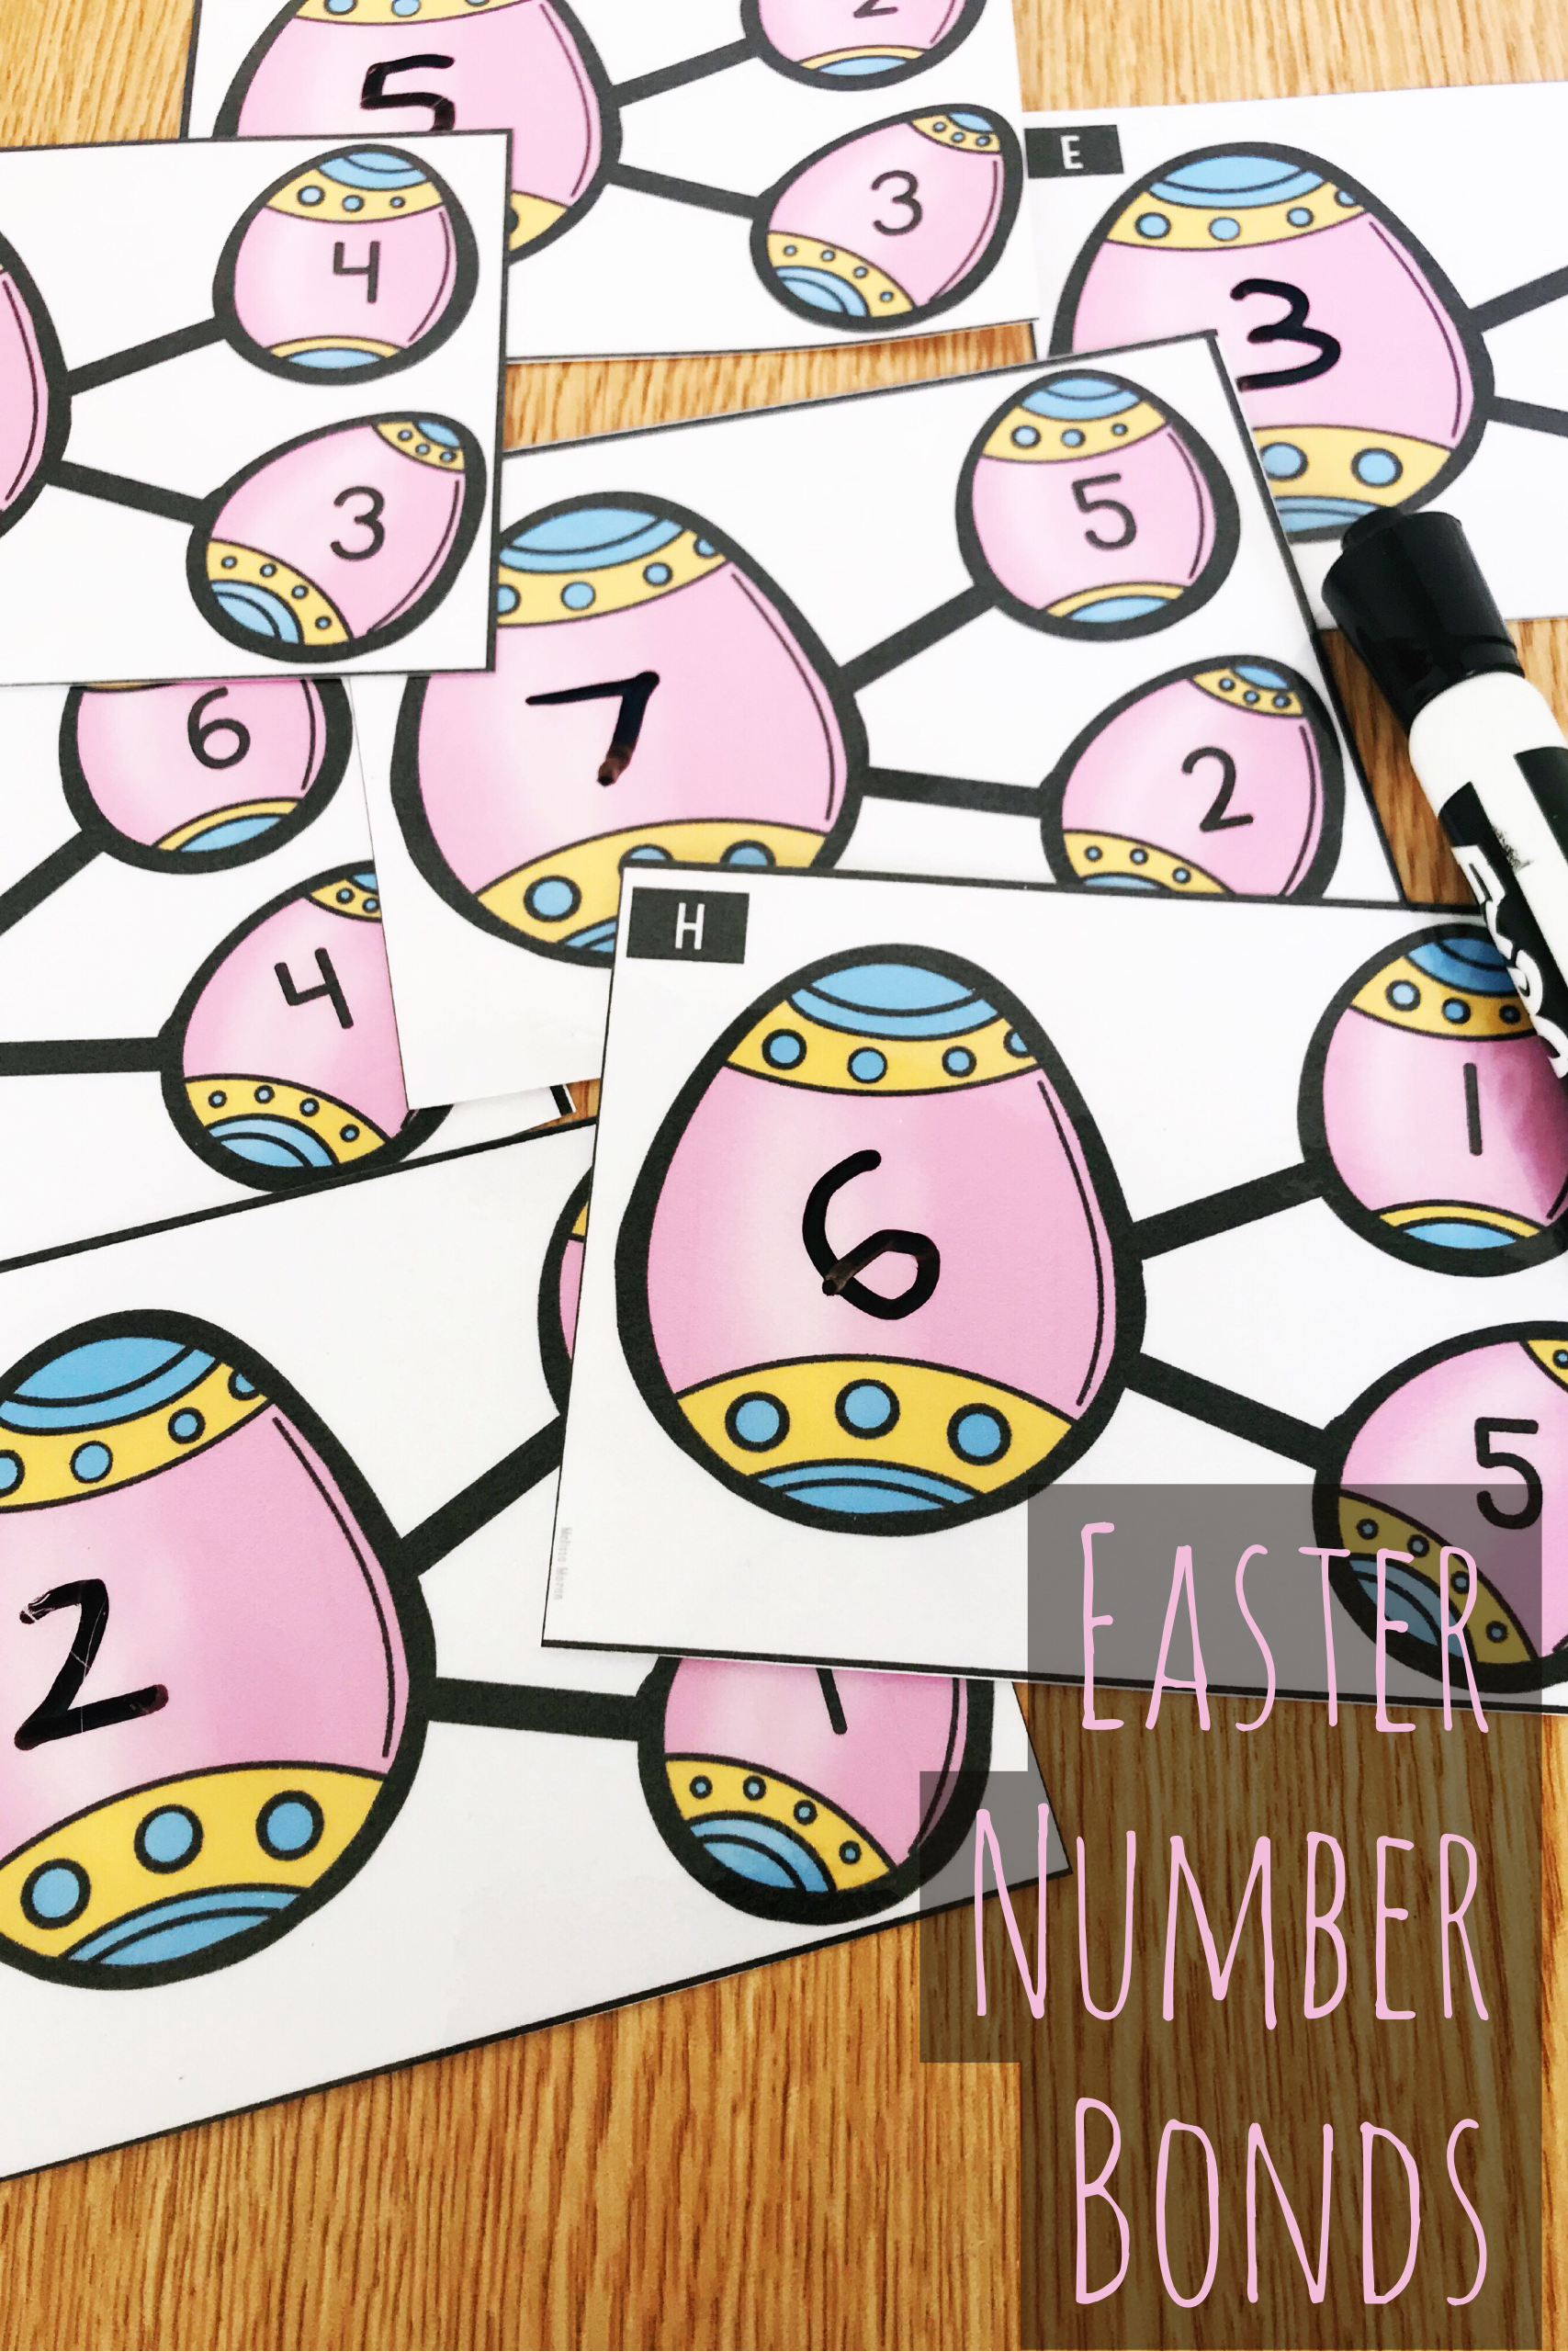 Kindergarten Easter Number Bonds